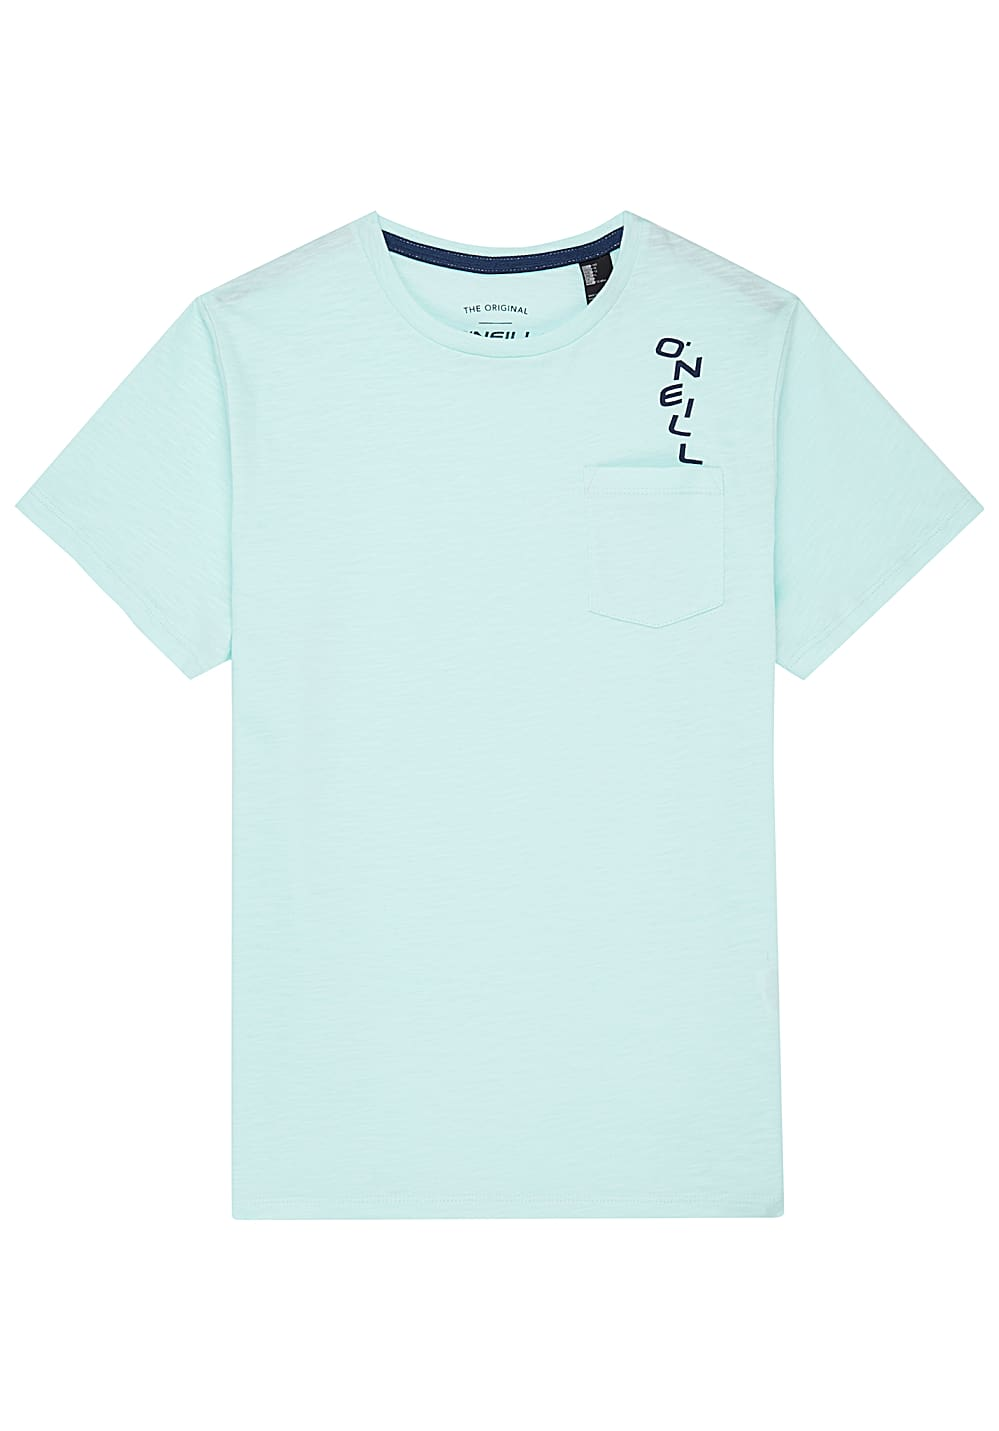 Boysoberteile - O'Neill Jacks Base T-Shirt für Jungs Blau - Onlineshop Planet Sports